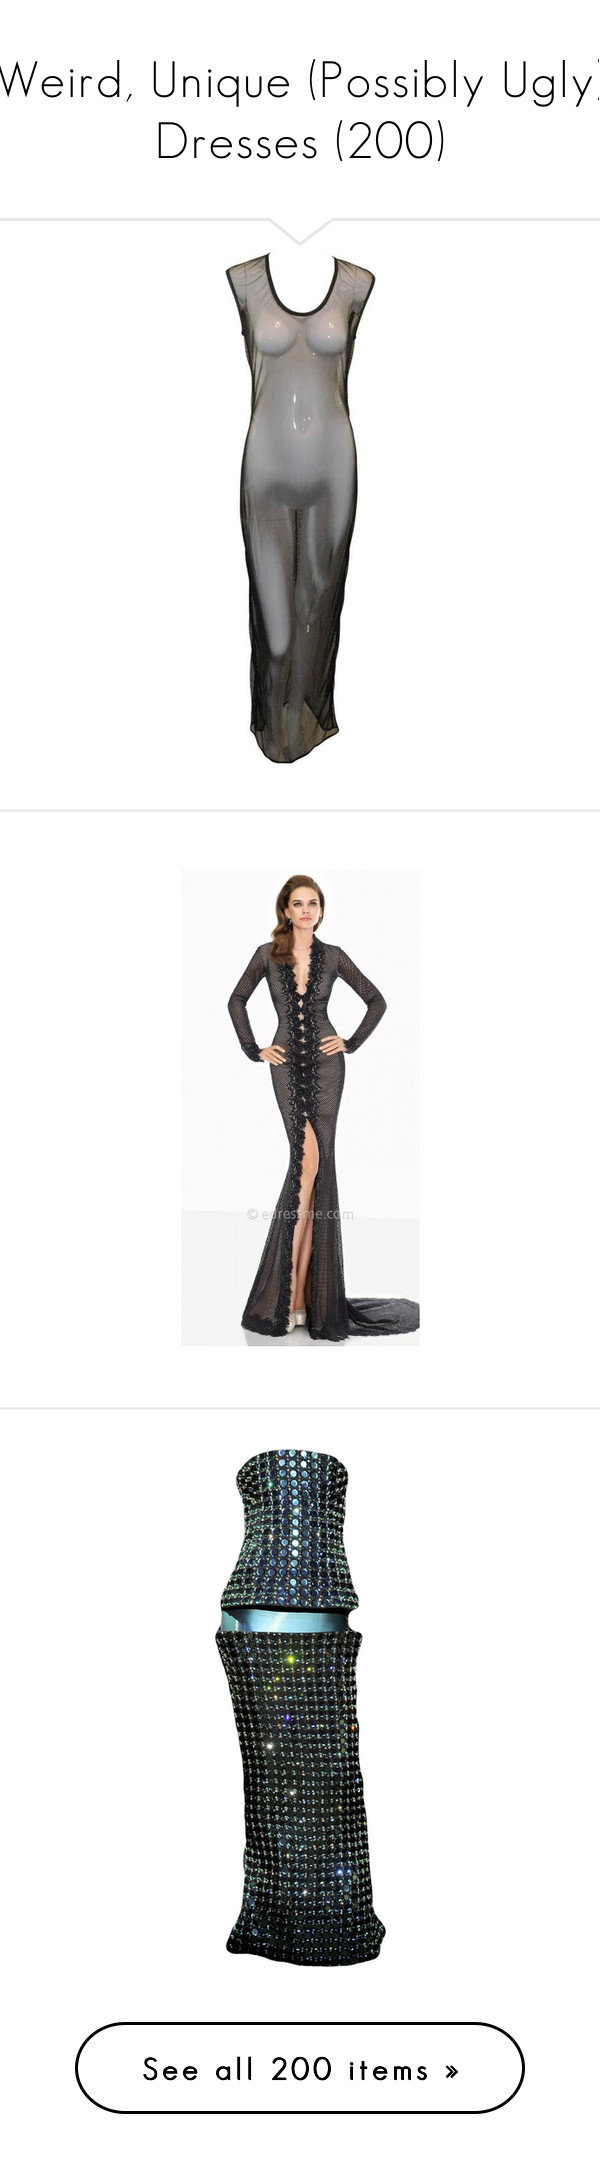 Weird unique possibly ugly dresses